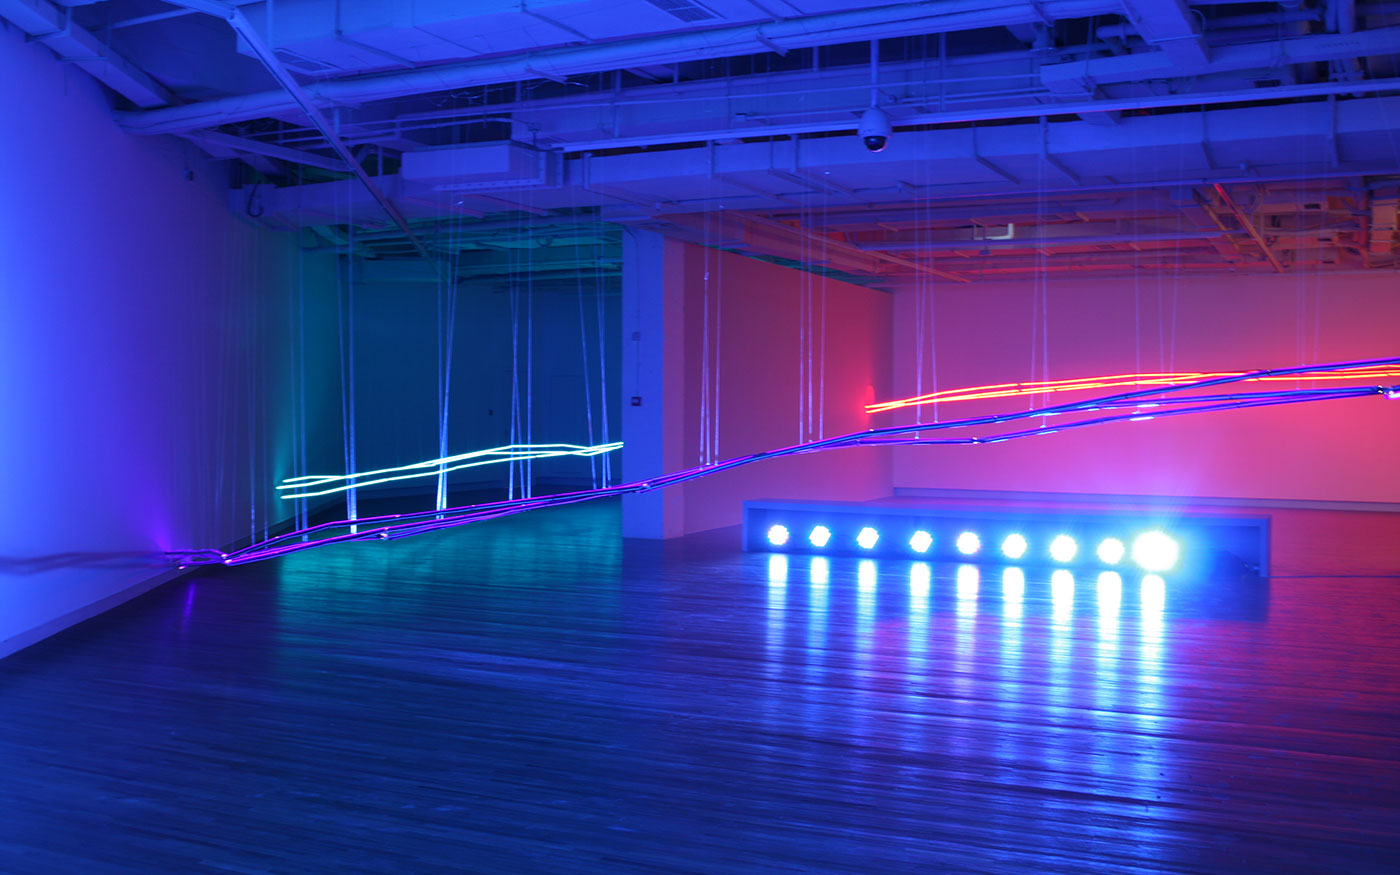 Light Artworks That Change the Density of Spaces